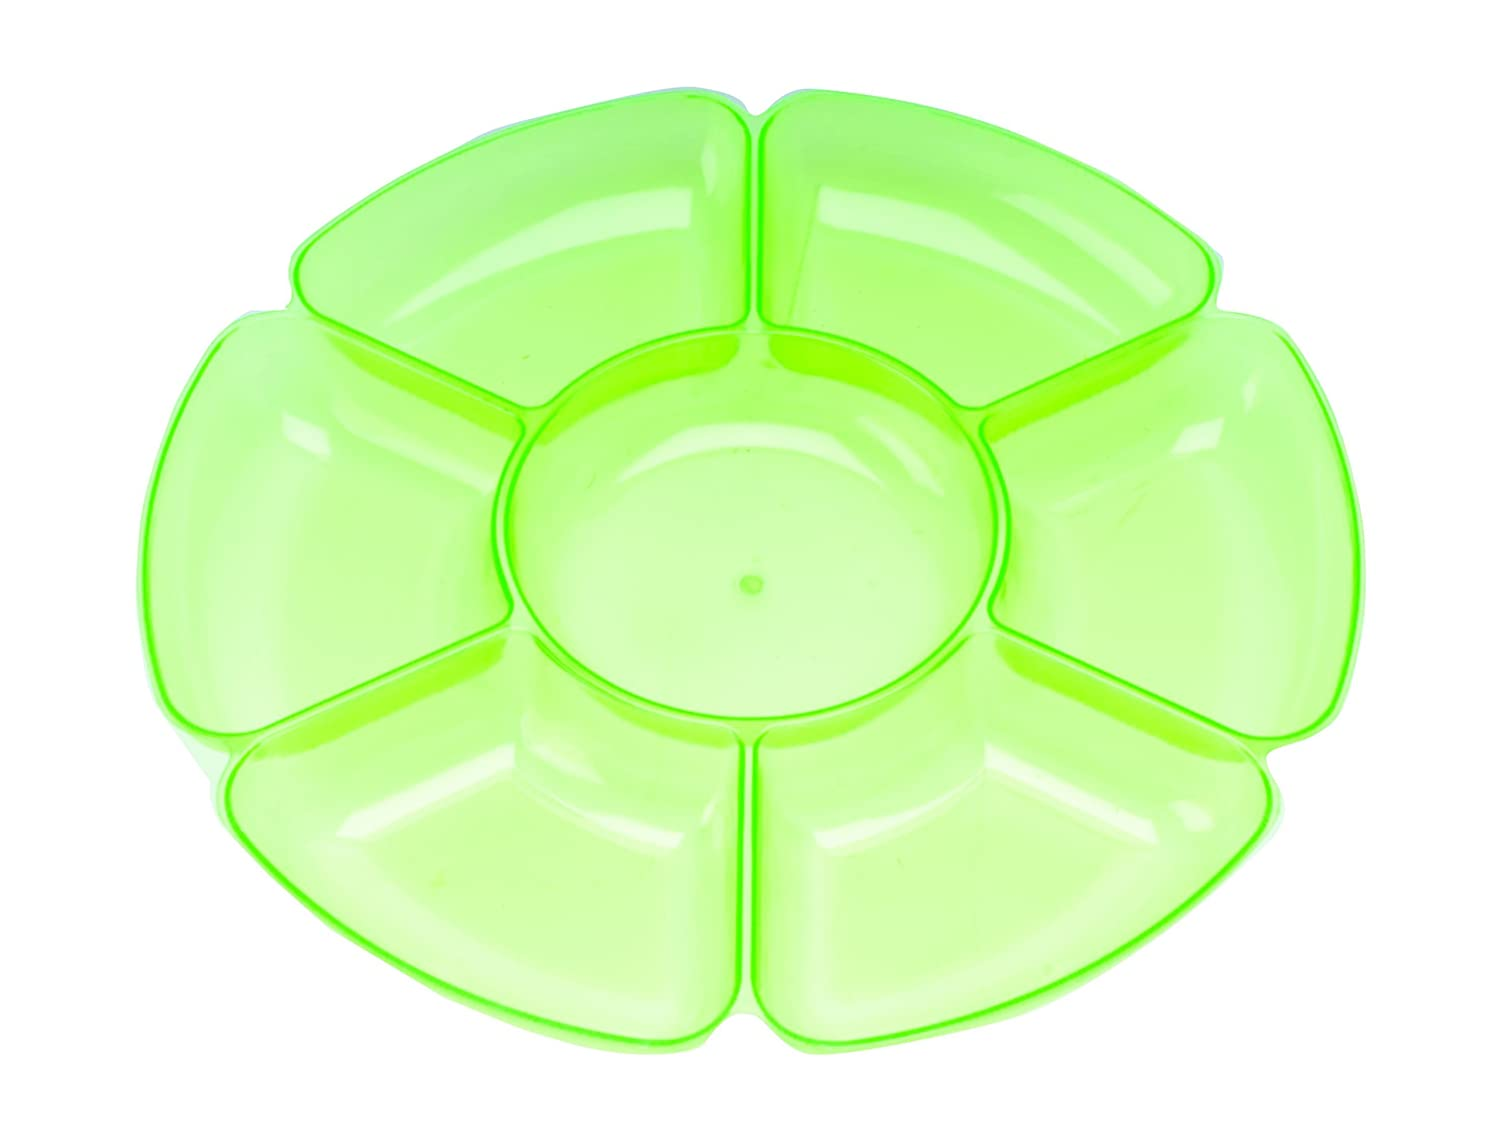 Chip & Dip Tray in Transparent Green